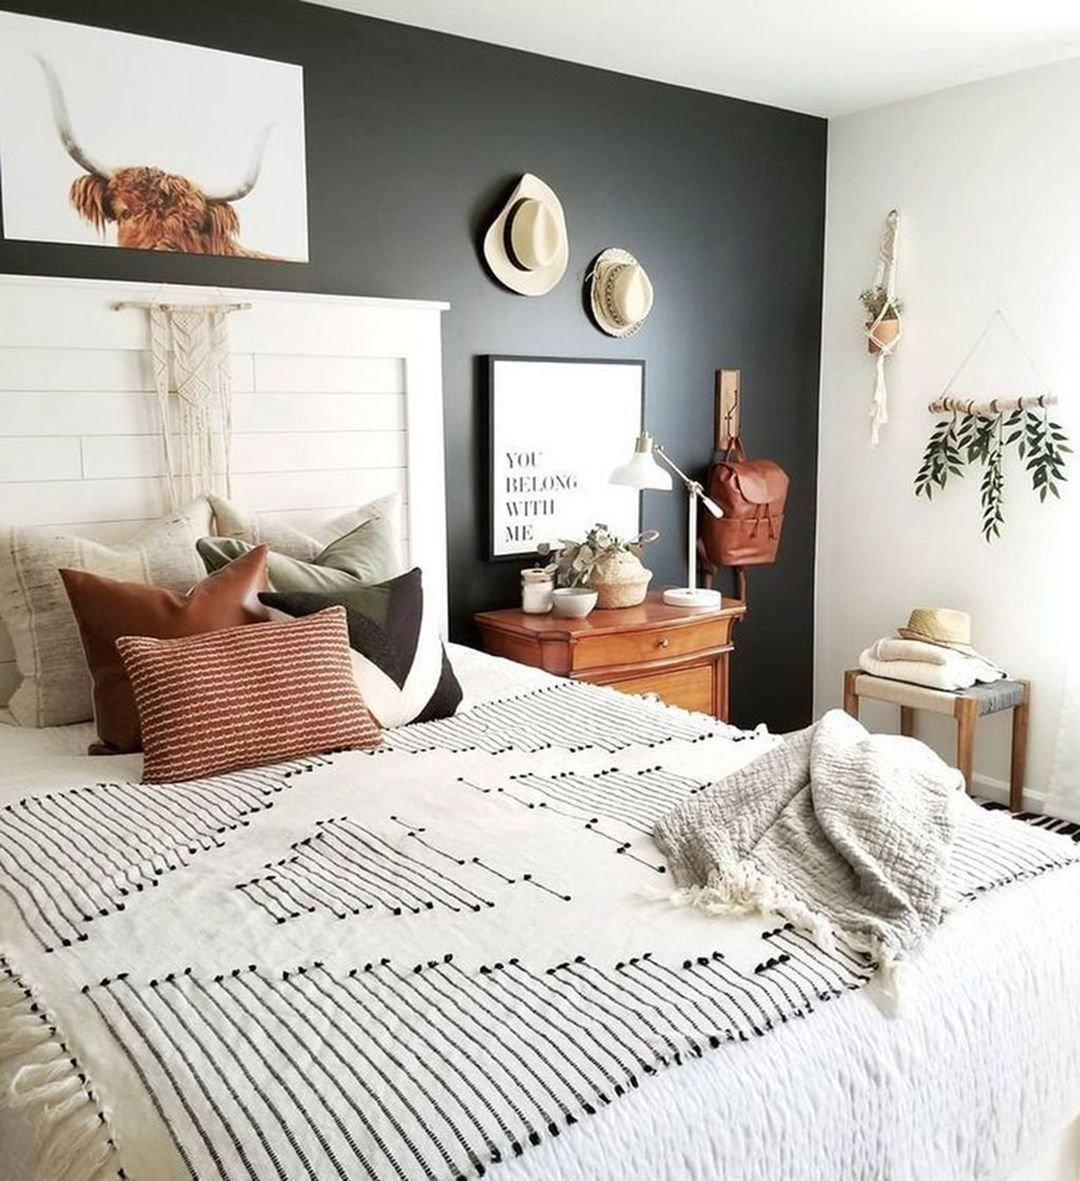 25 Scandinavian Bedroom Ideas To Give Airy And Stylish Look - 10Q